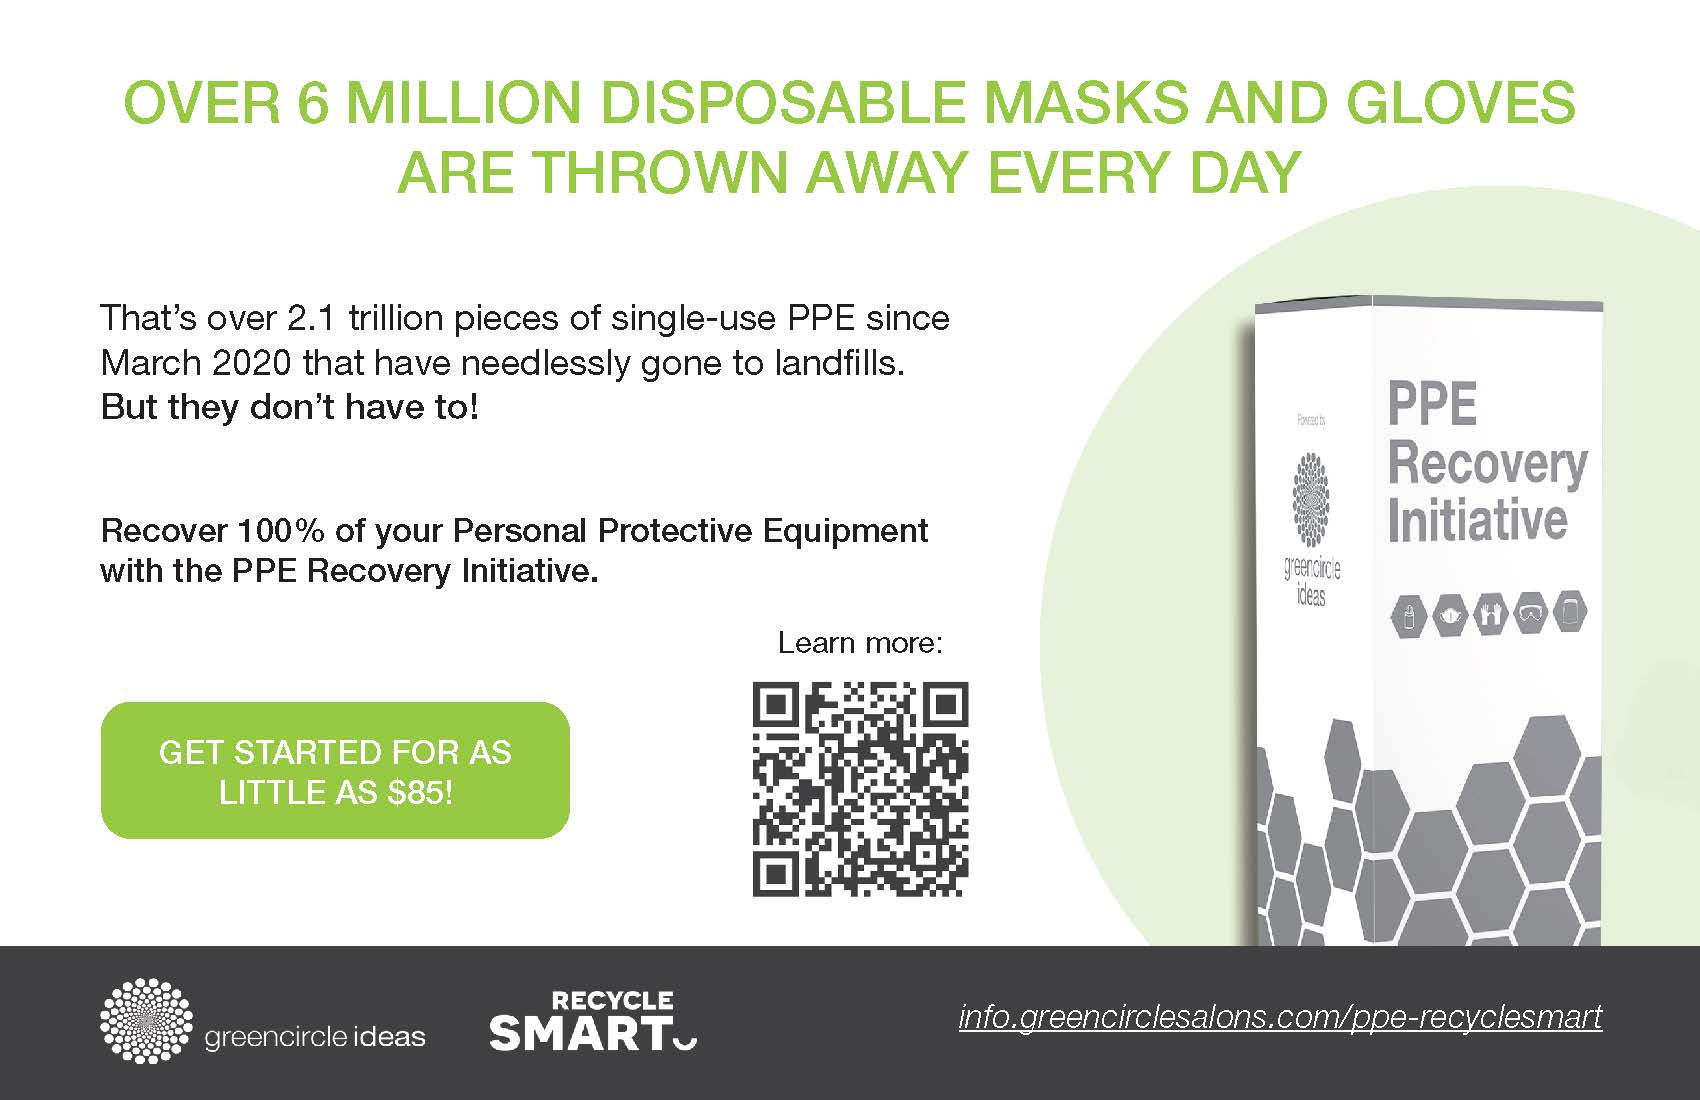 RecycleSmart-GreenCircle-PPE Recovery Initiative